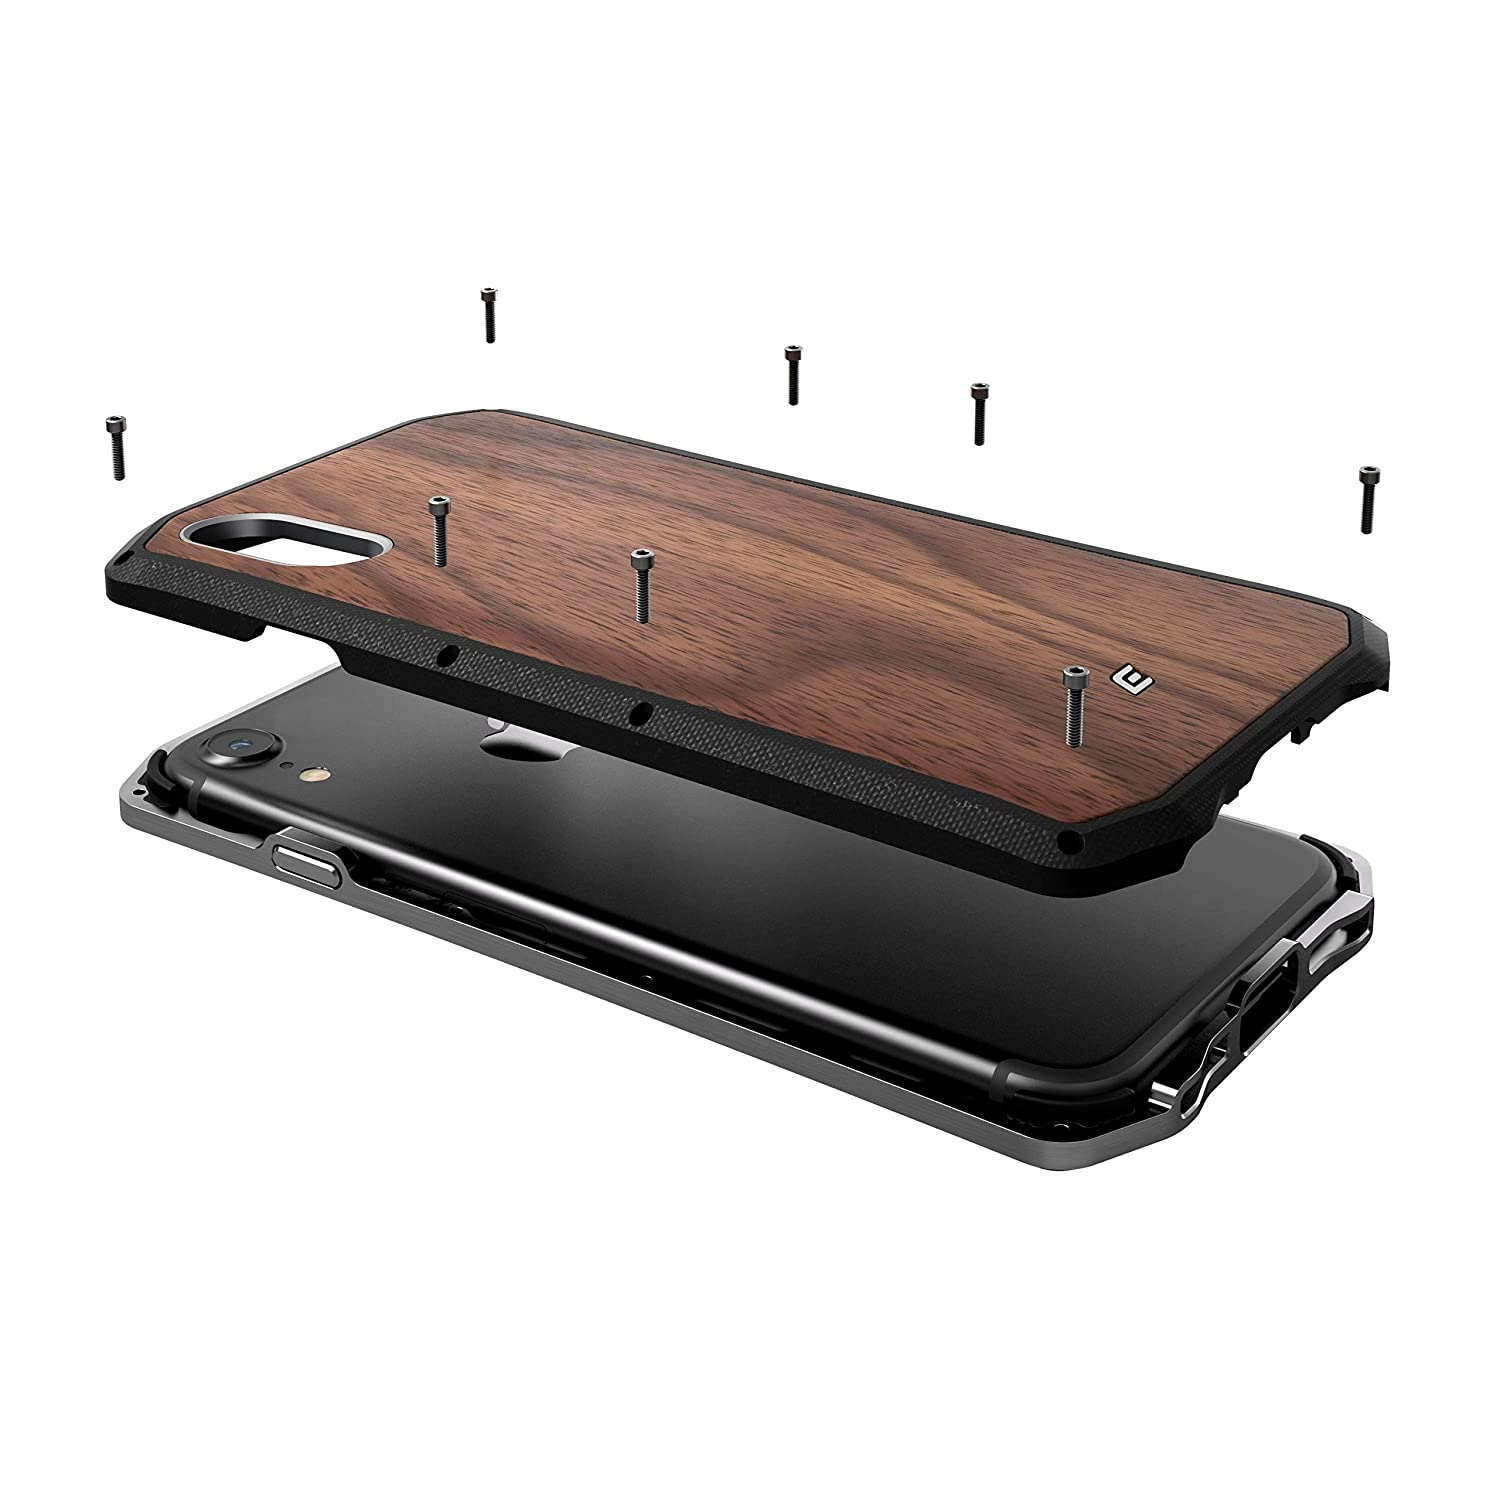 Amazon.com: Element Case Katana 18 - Carcasa para iPhone ...